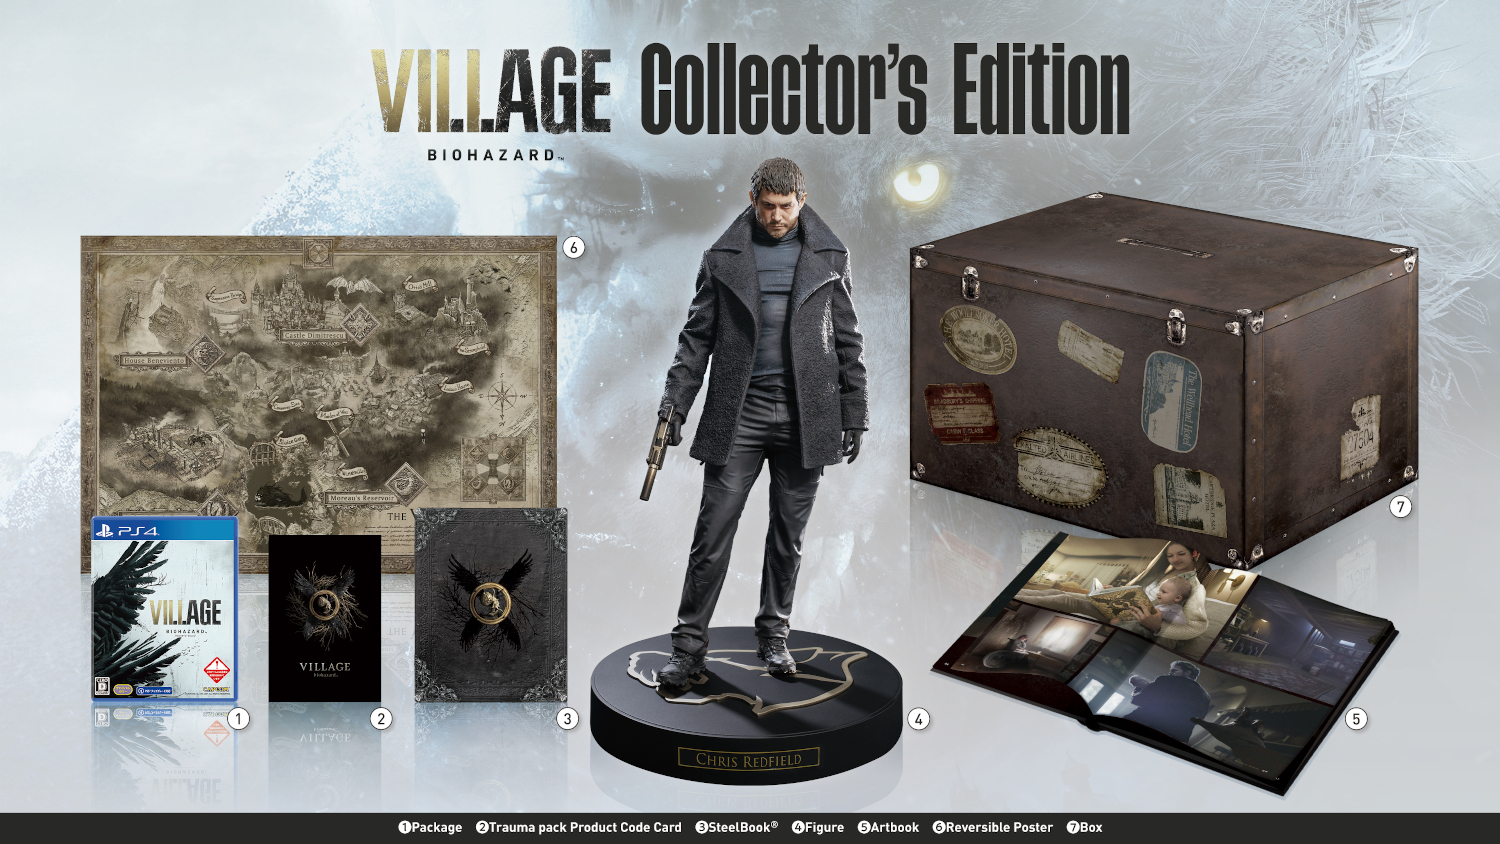 PS4 BIOHAZARD VILLAGE COLLECTOR'S EDITION PS4版